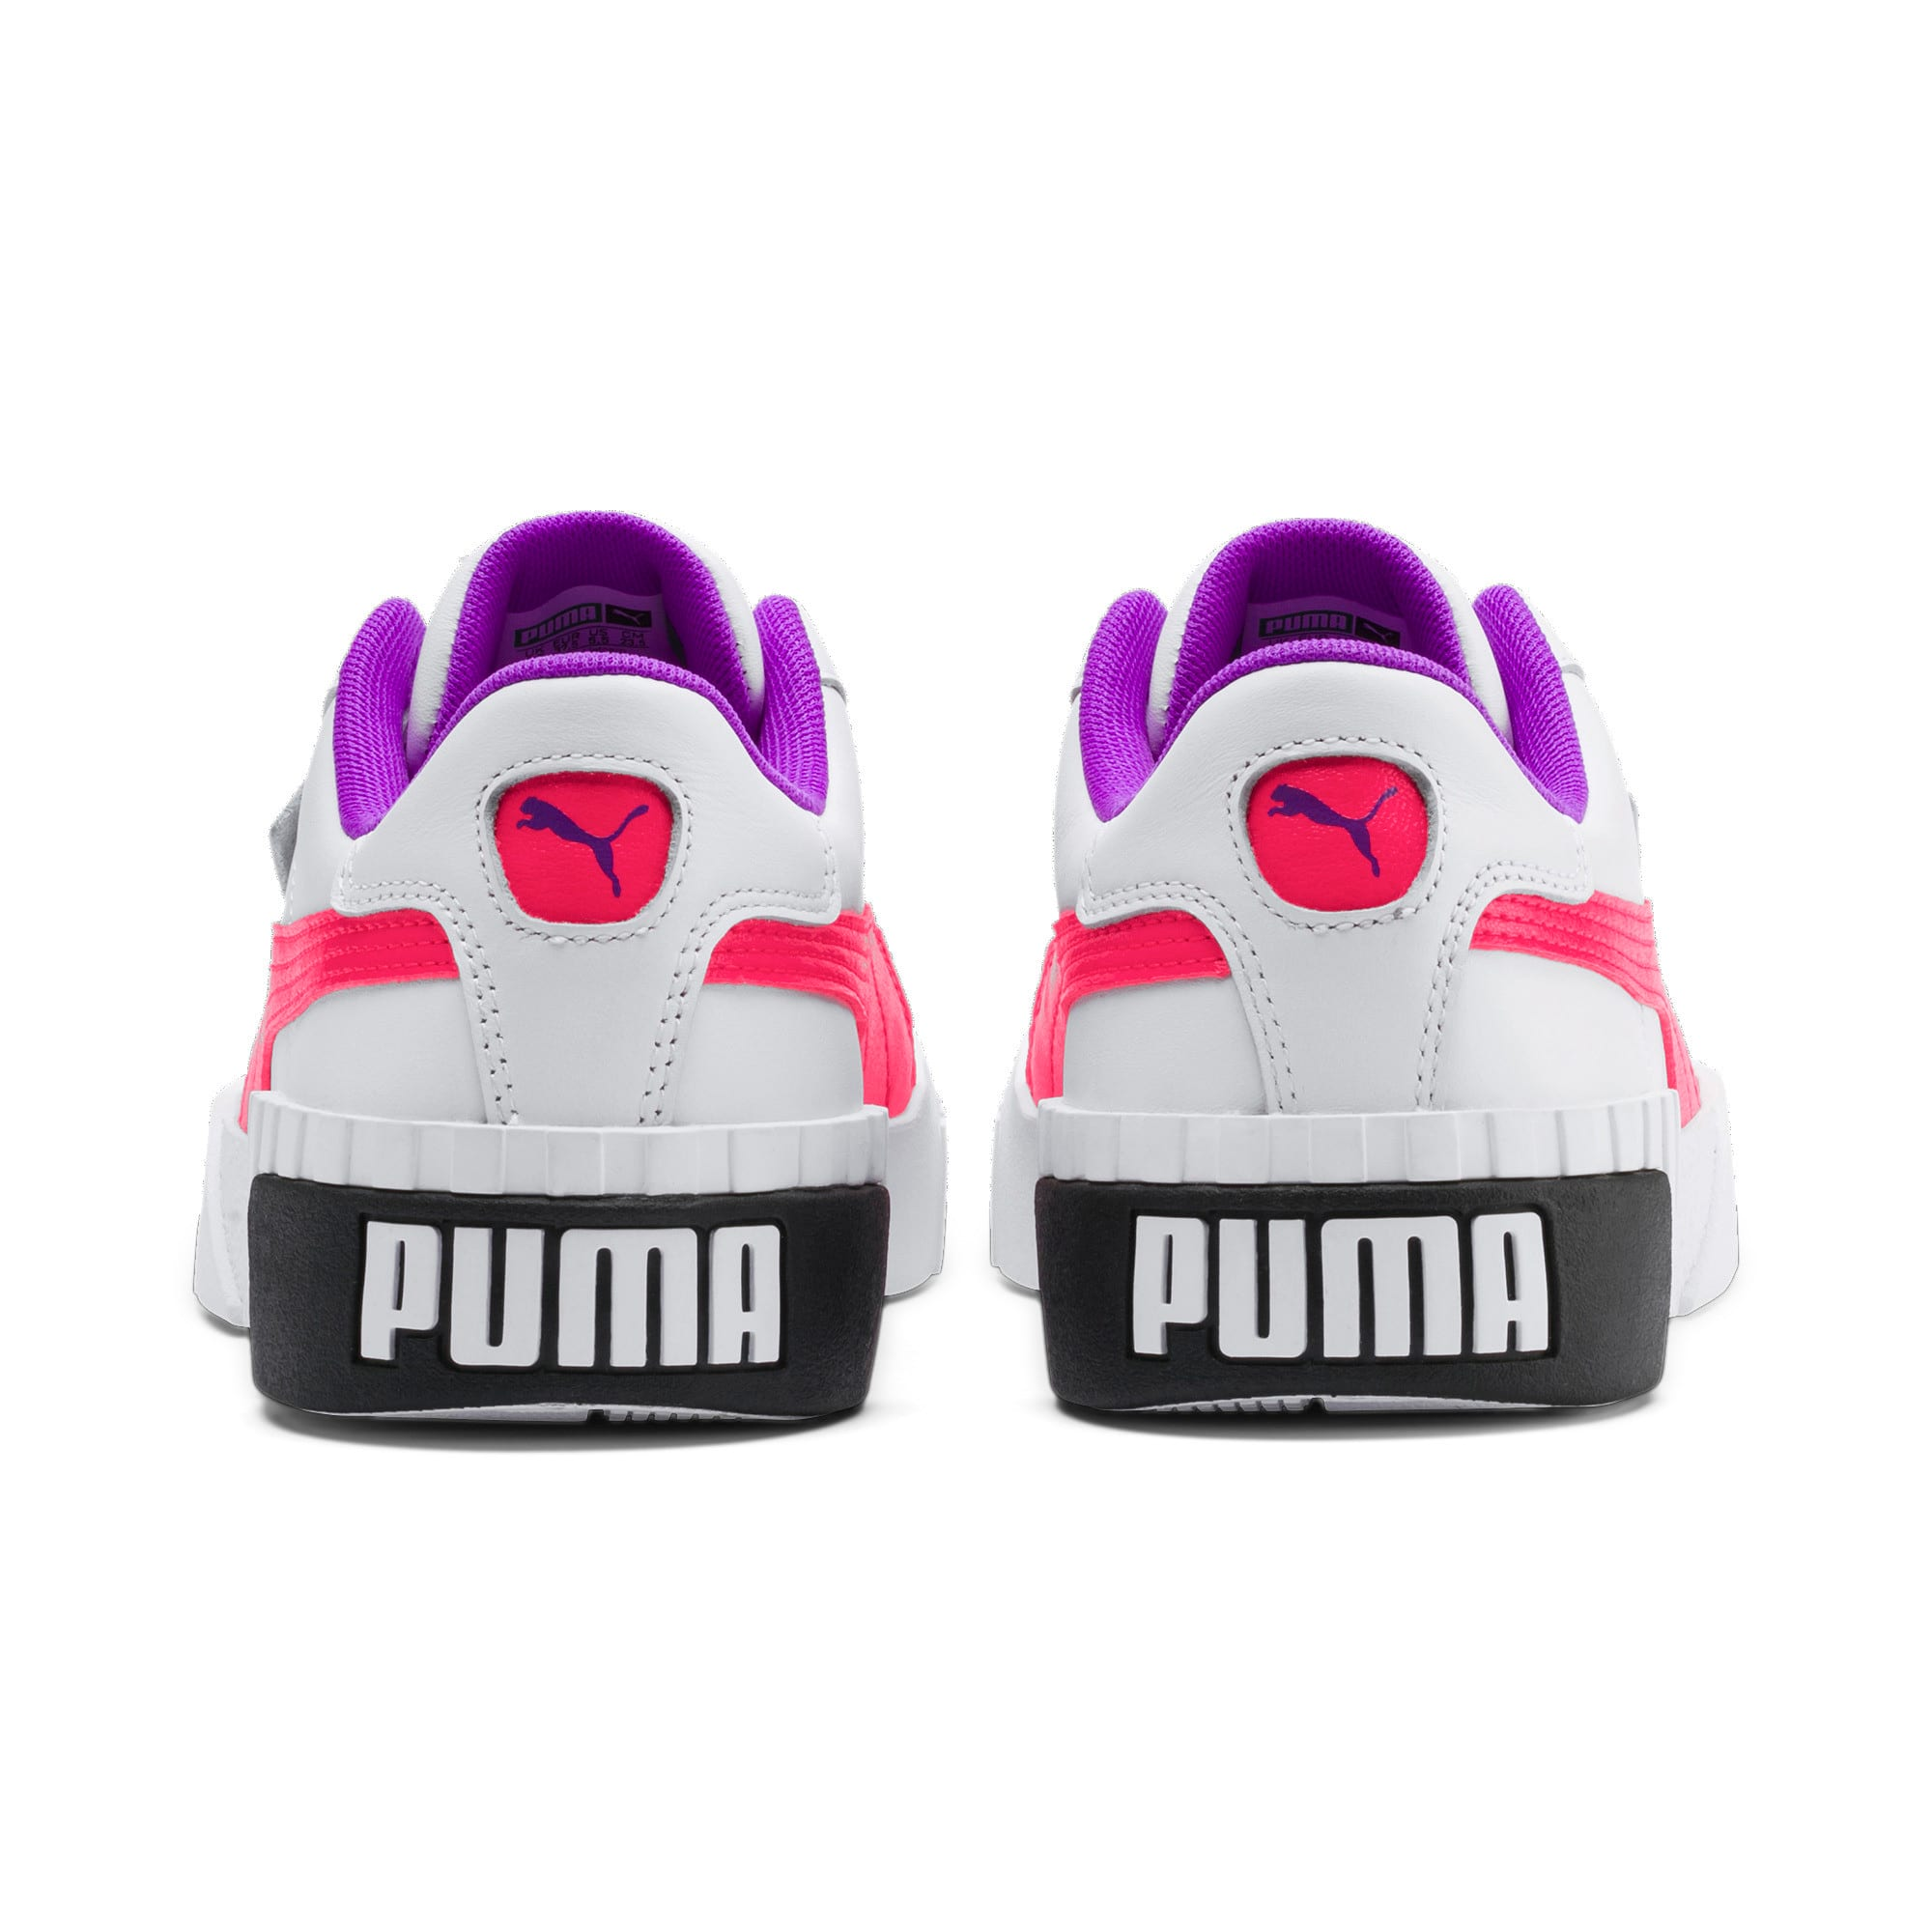 Thumbnail 4 of Cali Chase Women's Training Shoes, Puma White-Nrgy Rose, medium